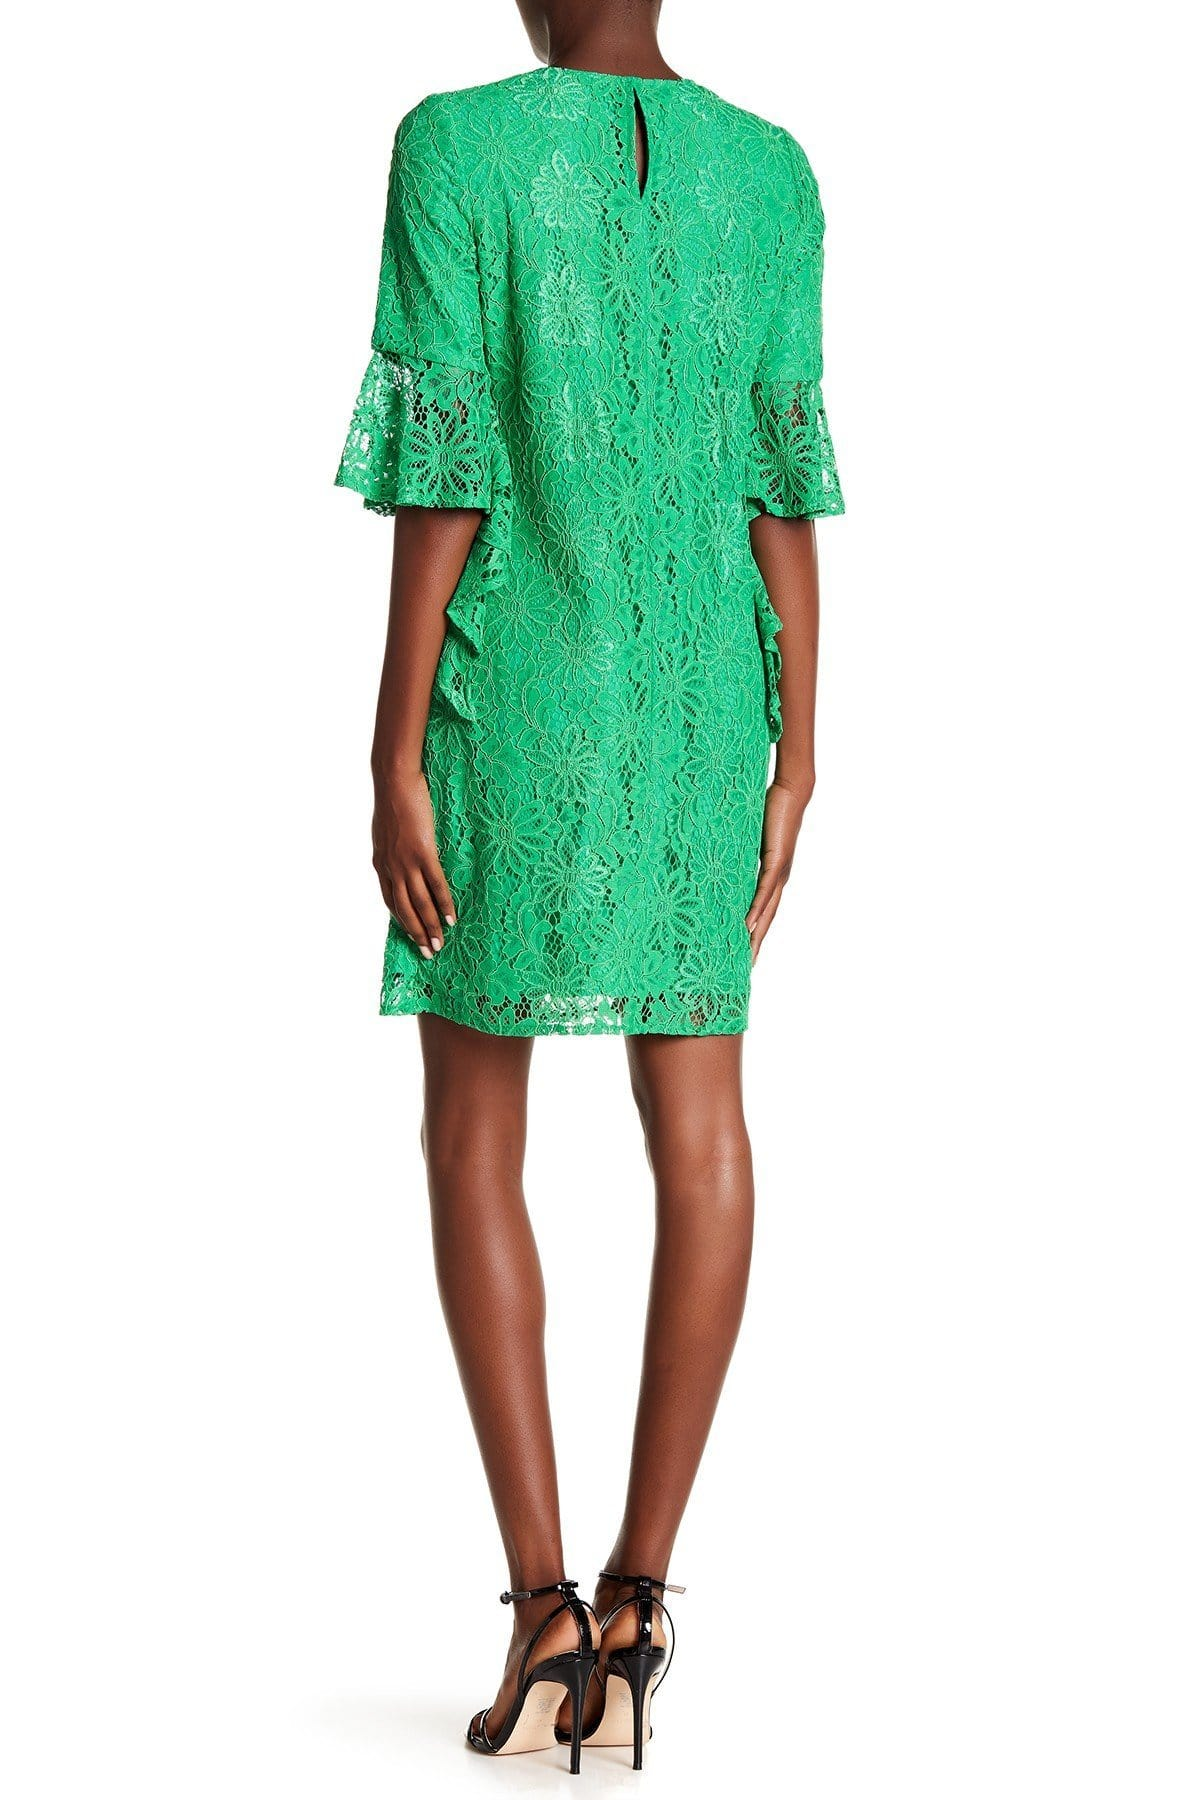 Nanette Nanette Lepore - ND8S10S99 Bell Sleeve Lace Shift Dress In Green